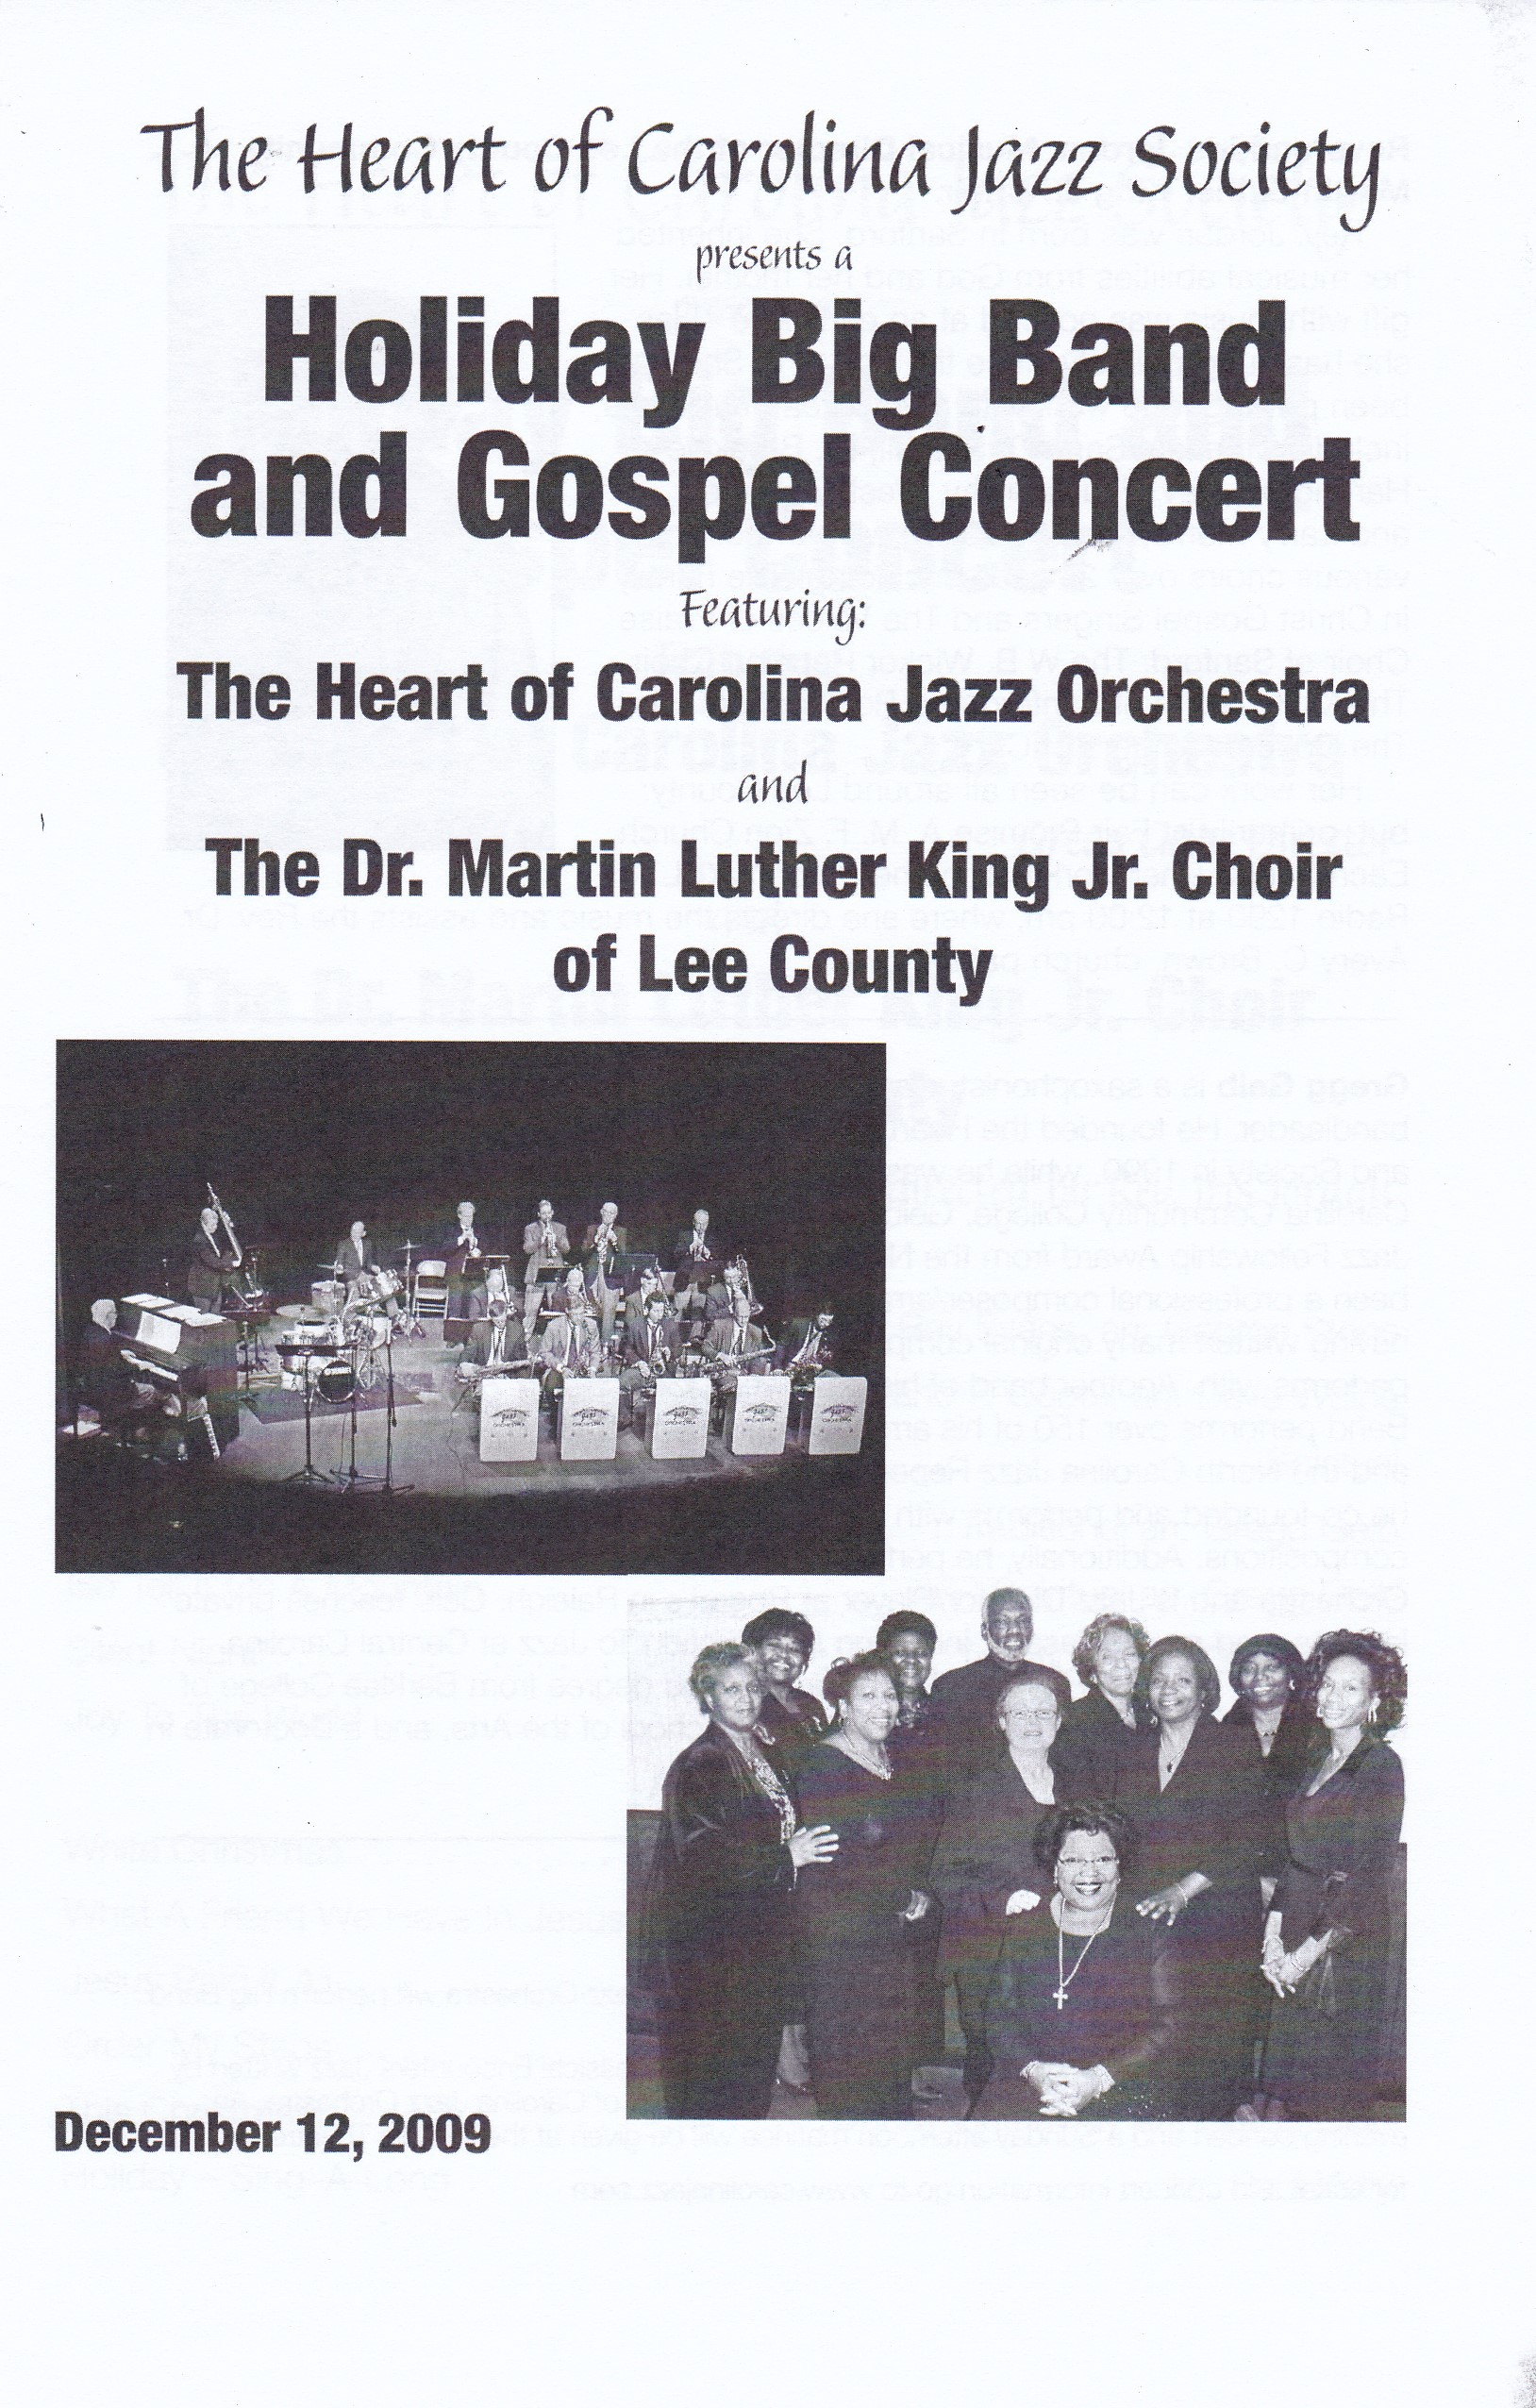 HOCJO-Holiday-Big-band-and-gospel-concert-program